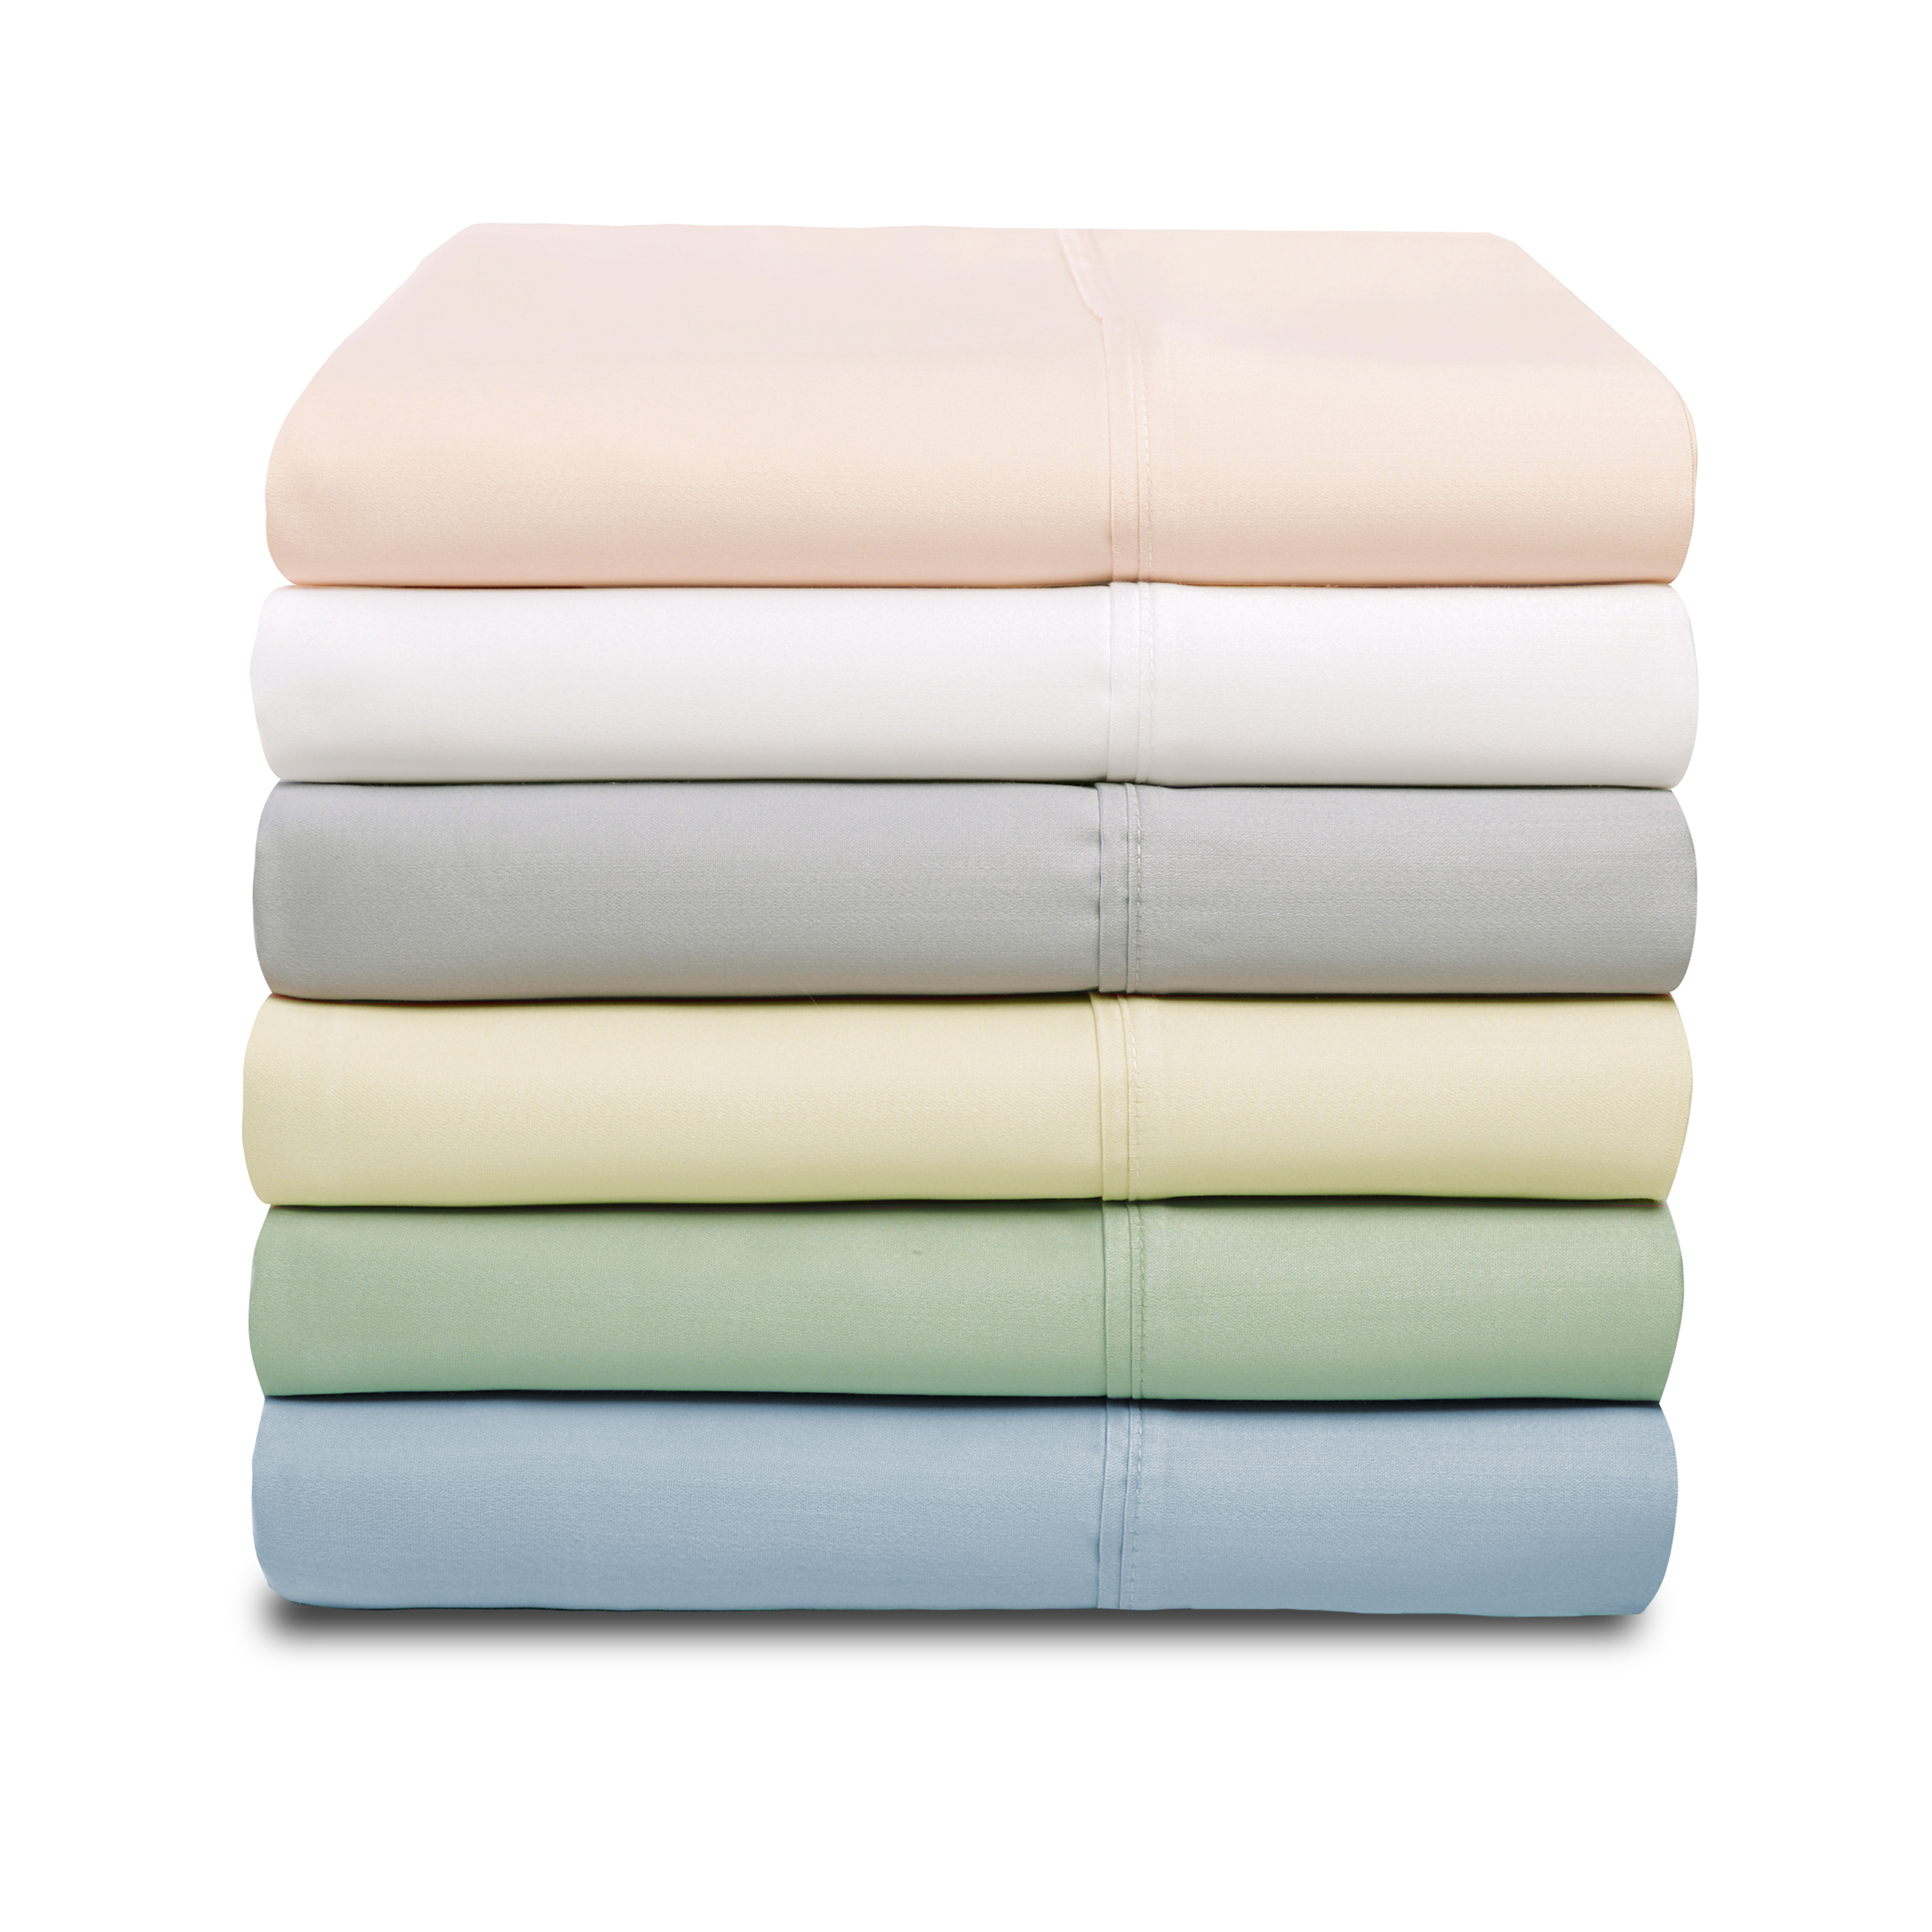 1000-Thread-Count-Tencel-Polyester-Ultra-Soft-Pillowcase-Set-6-Colors thumbnail 3